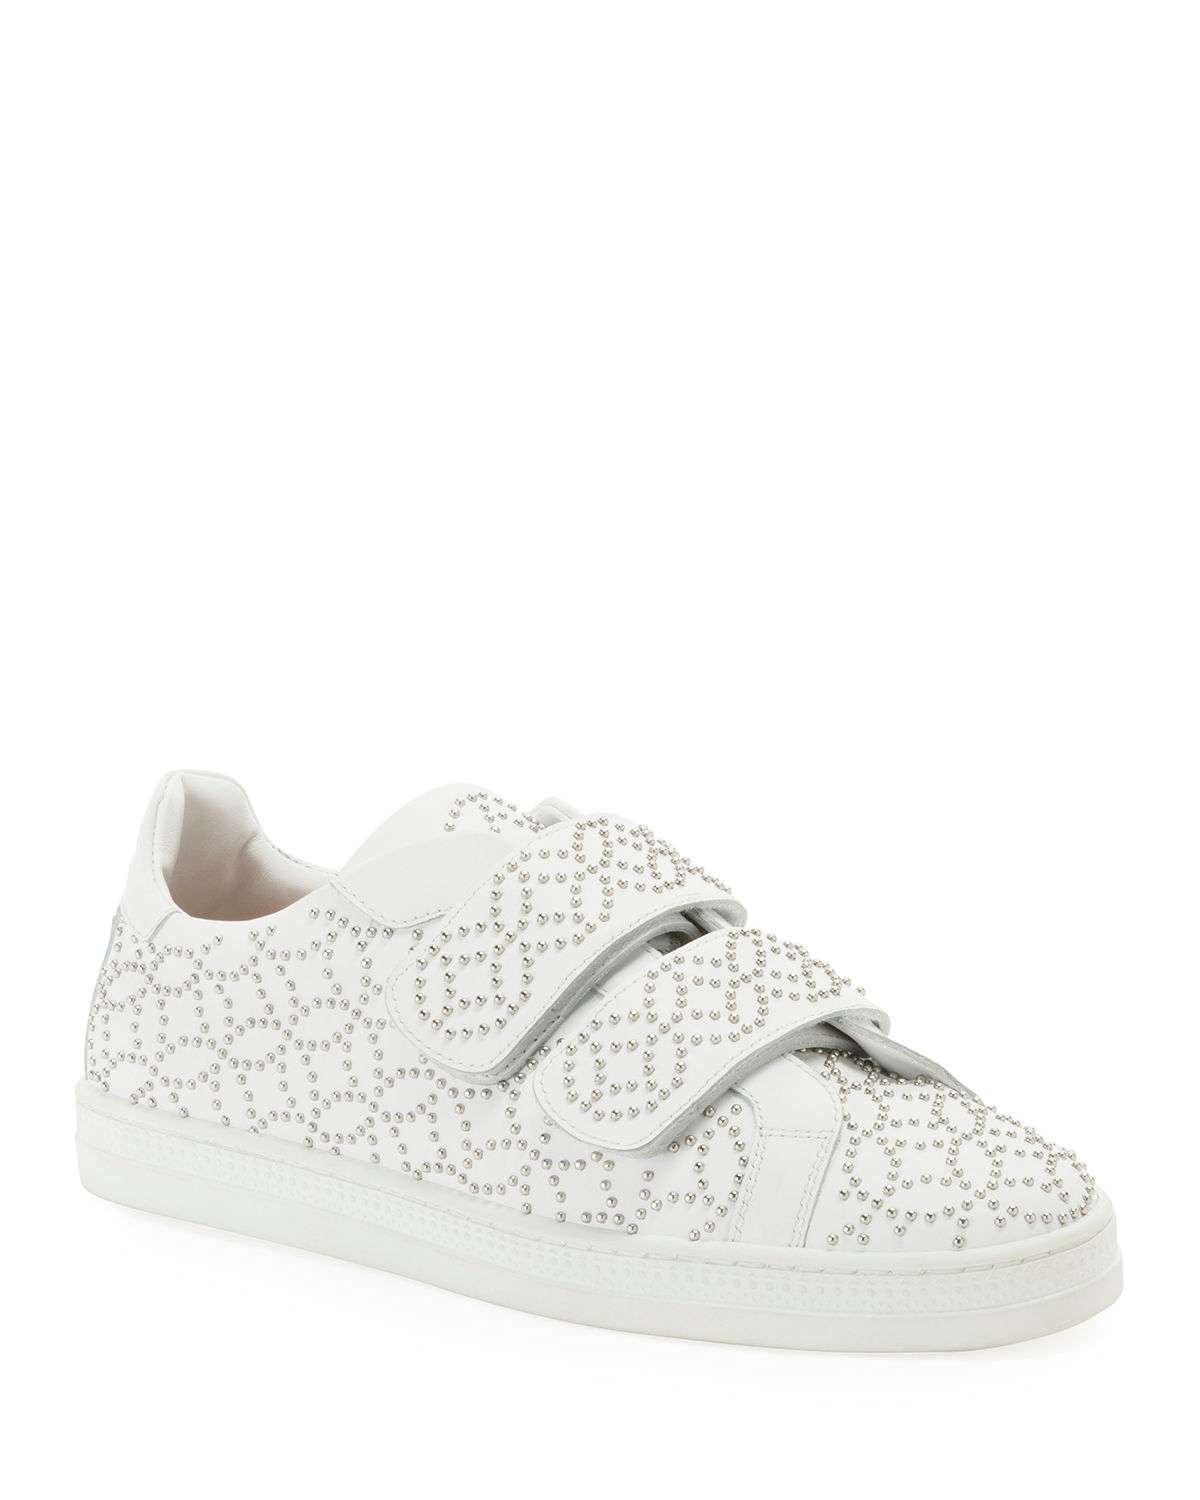 Grip-Strap Leather Sneakers w/ Studs